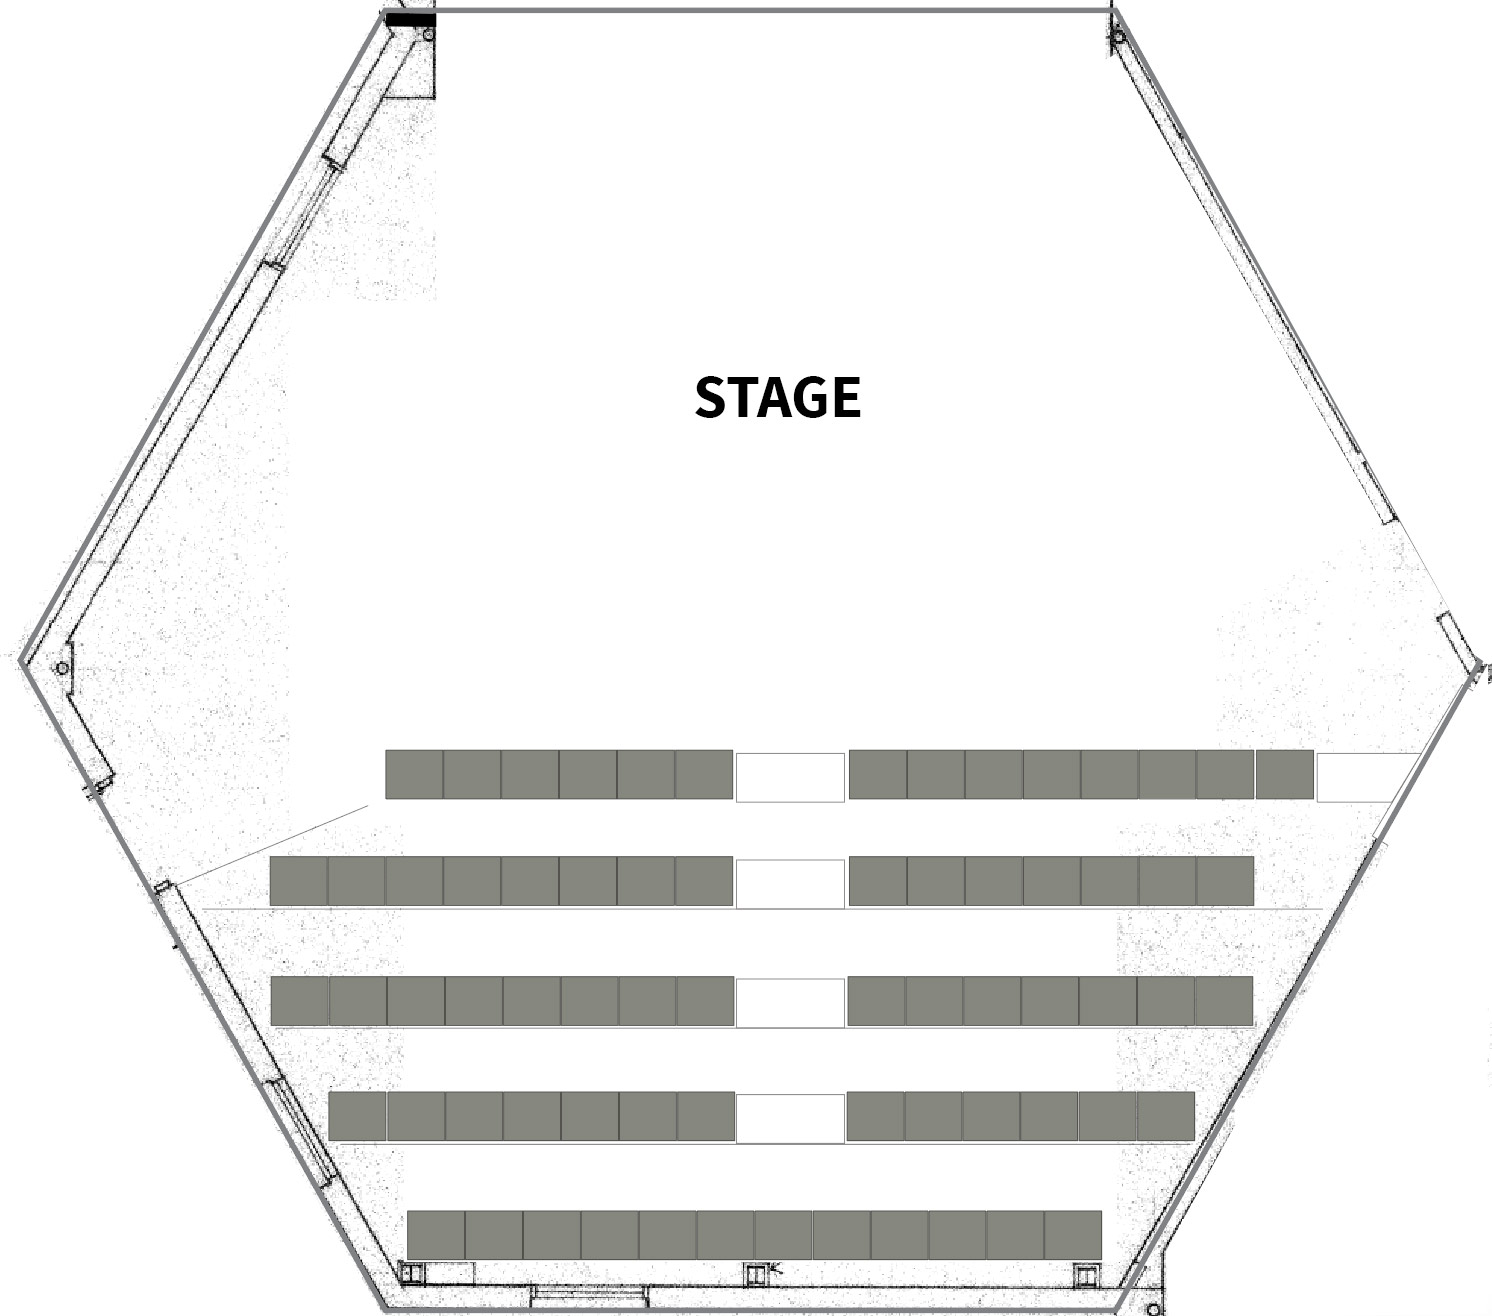 stage directions diagram person wiring for bt openreach master socket 5c seating luther burbank center the arts download chart pdf